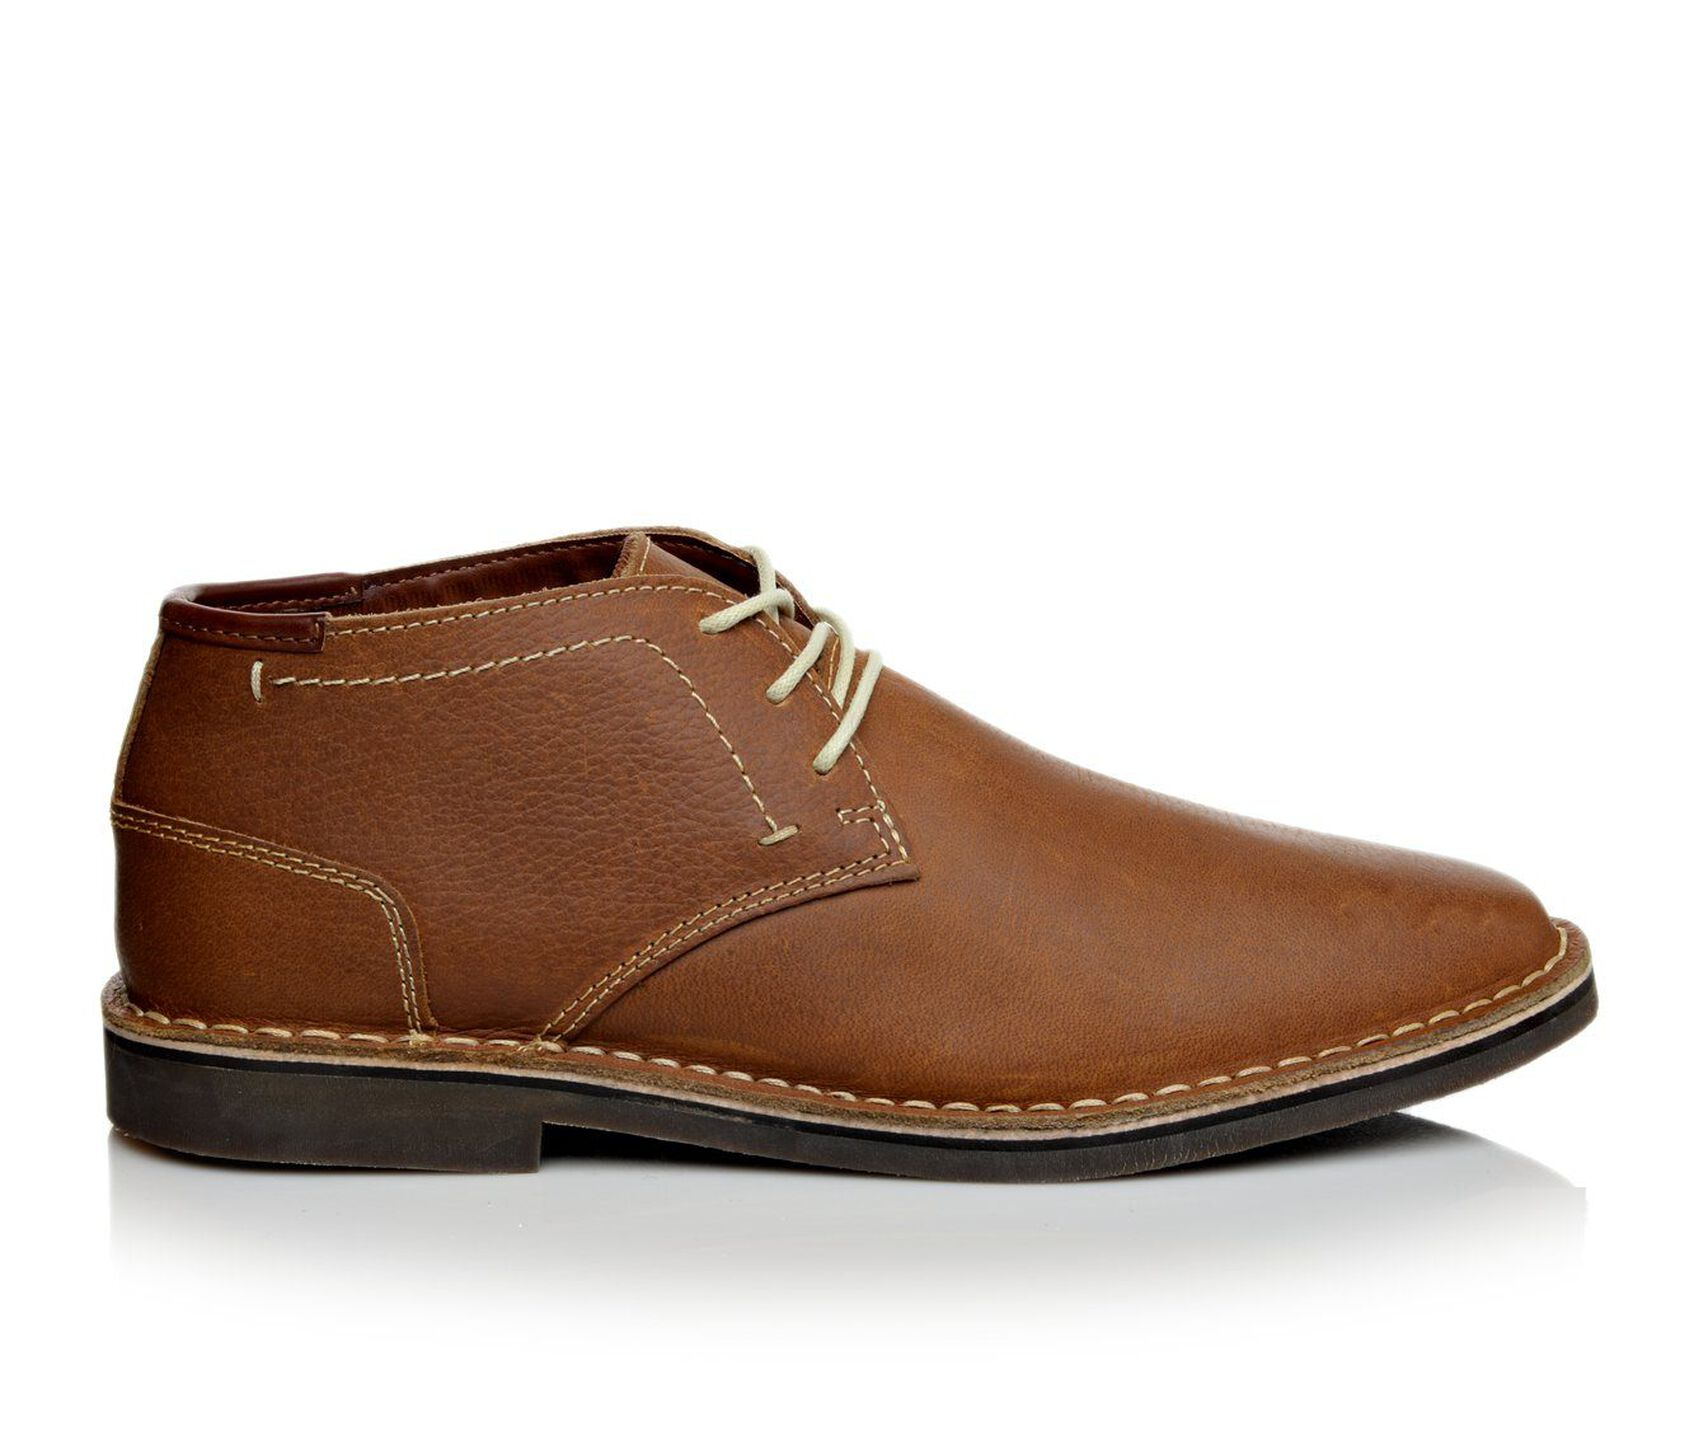 d06262a82e2 Men's Kenneth Cole Reaction Desert Wind Chukka Boots